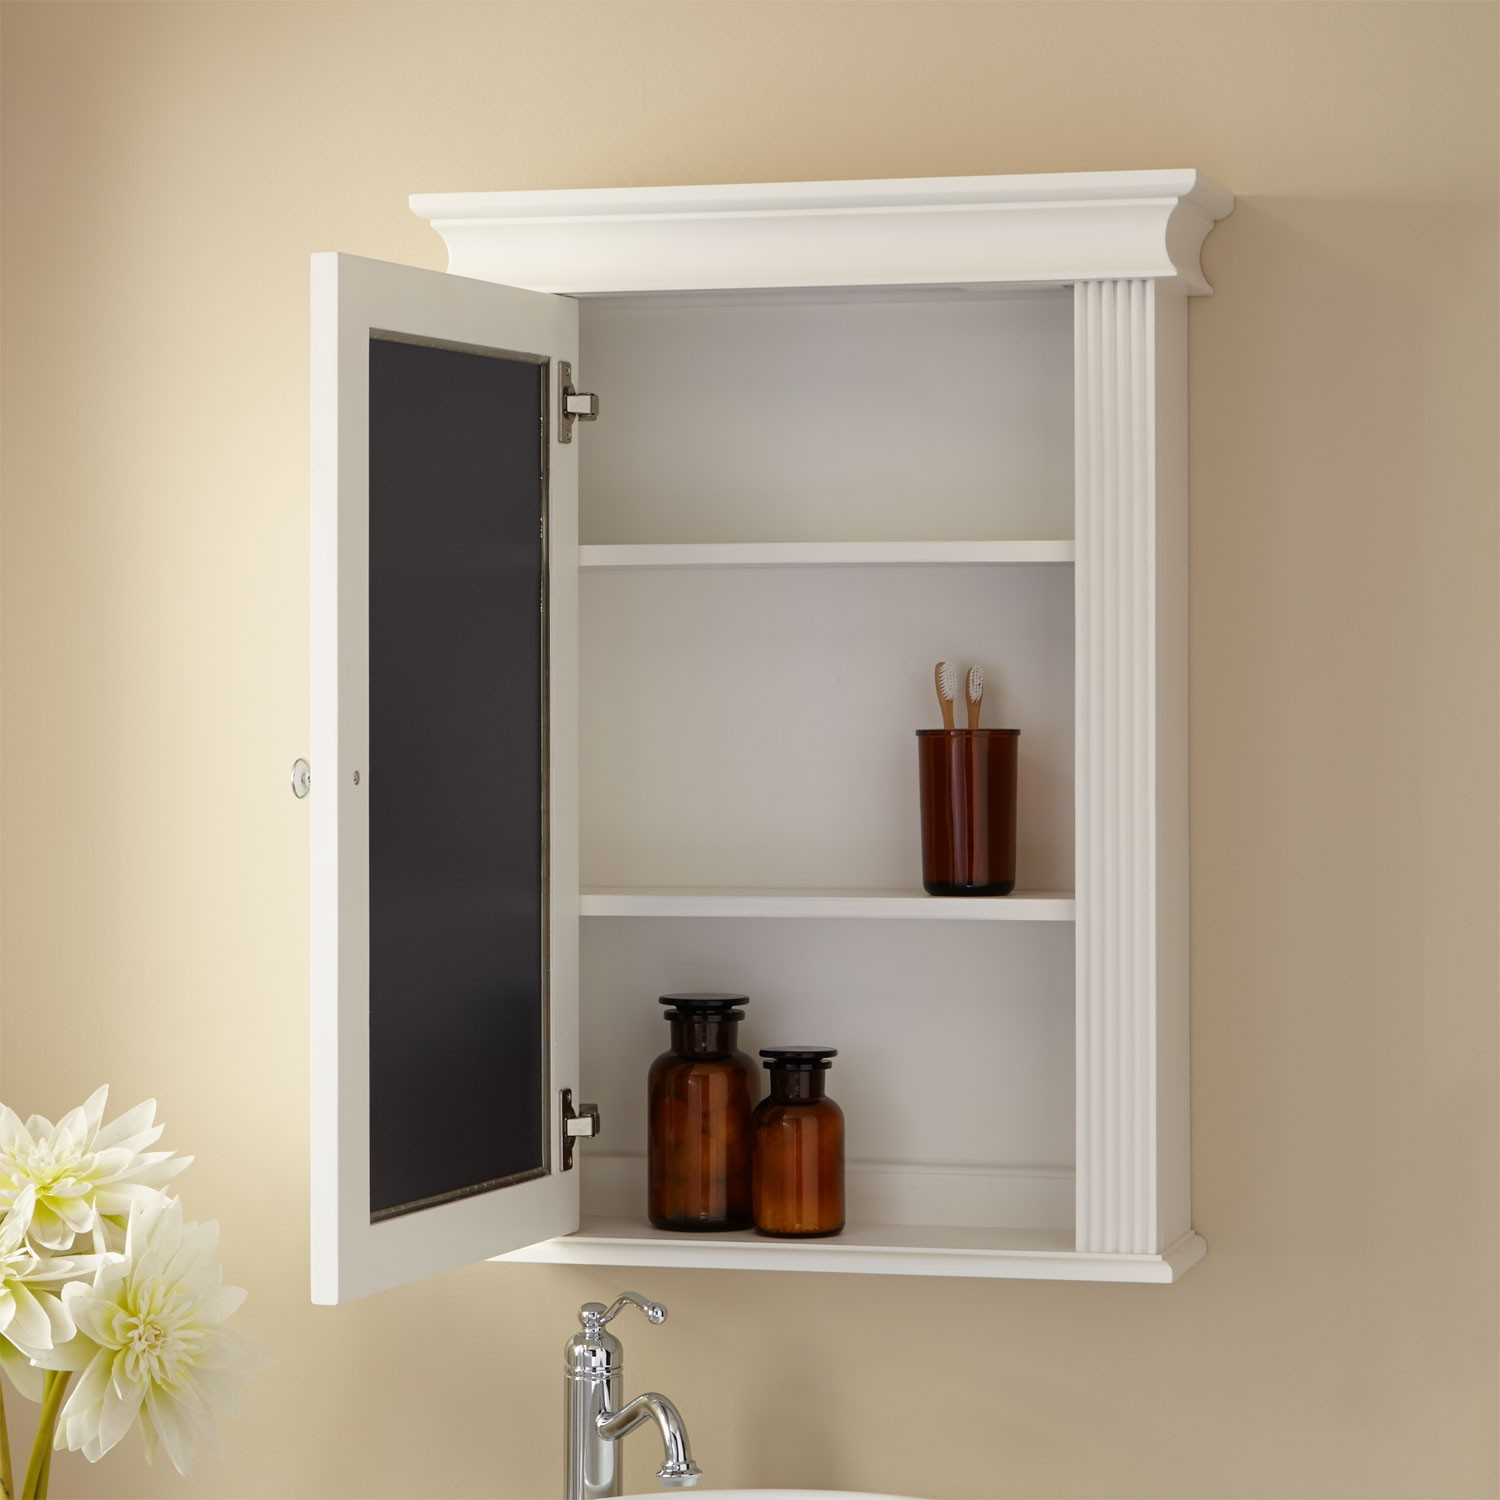 Wall Mirror No Frame Good Recessed Medicine Cabinet No Mirror – Homesfeed